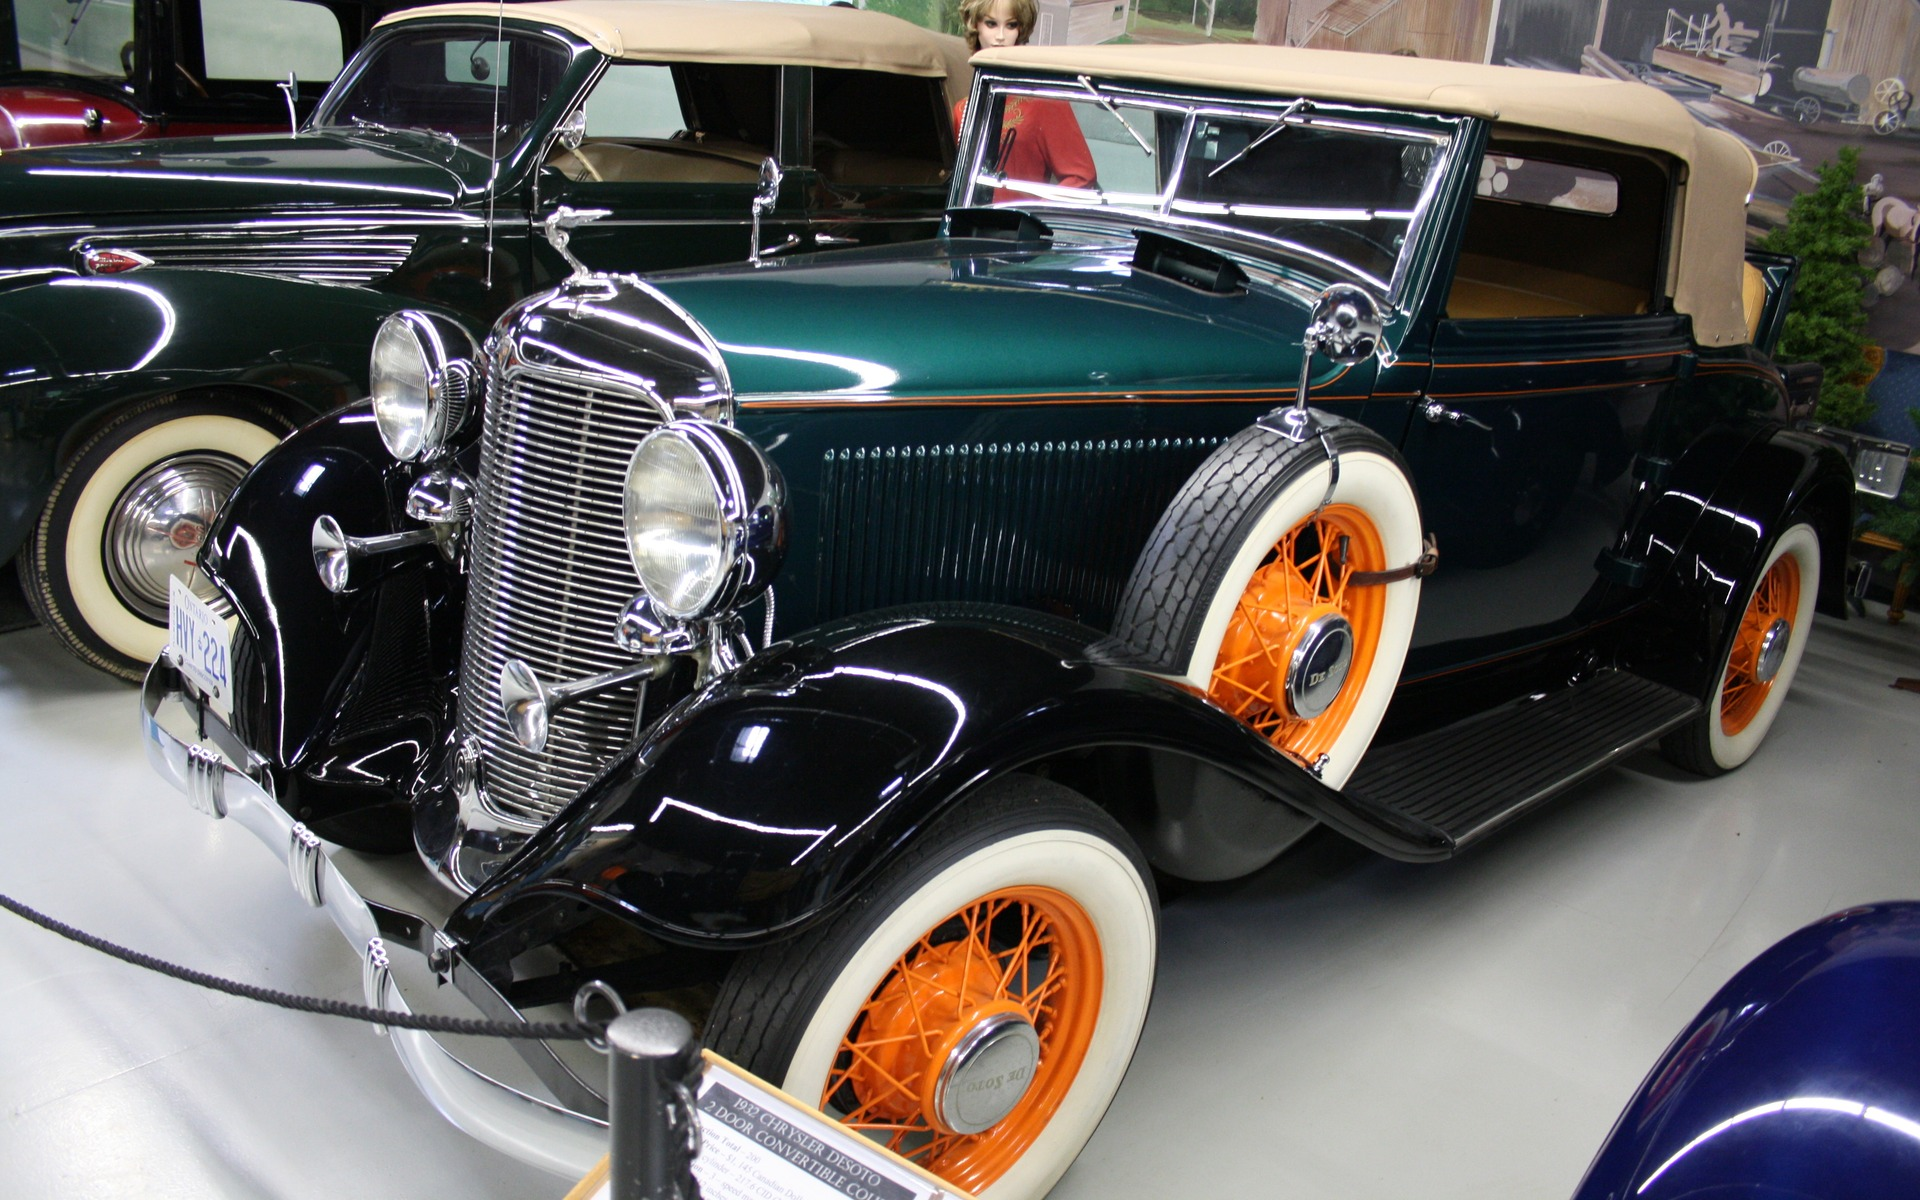 2 Door Convertible >> The Canadian Transportation Museum & Heritage Village: A Significant Collection - 10/31